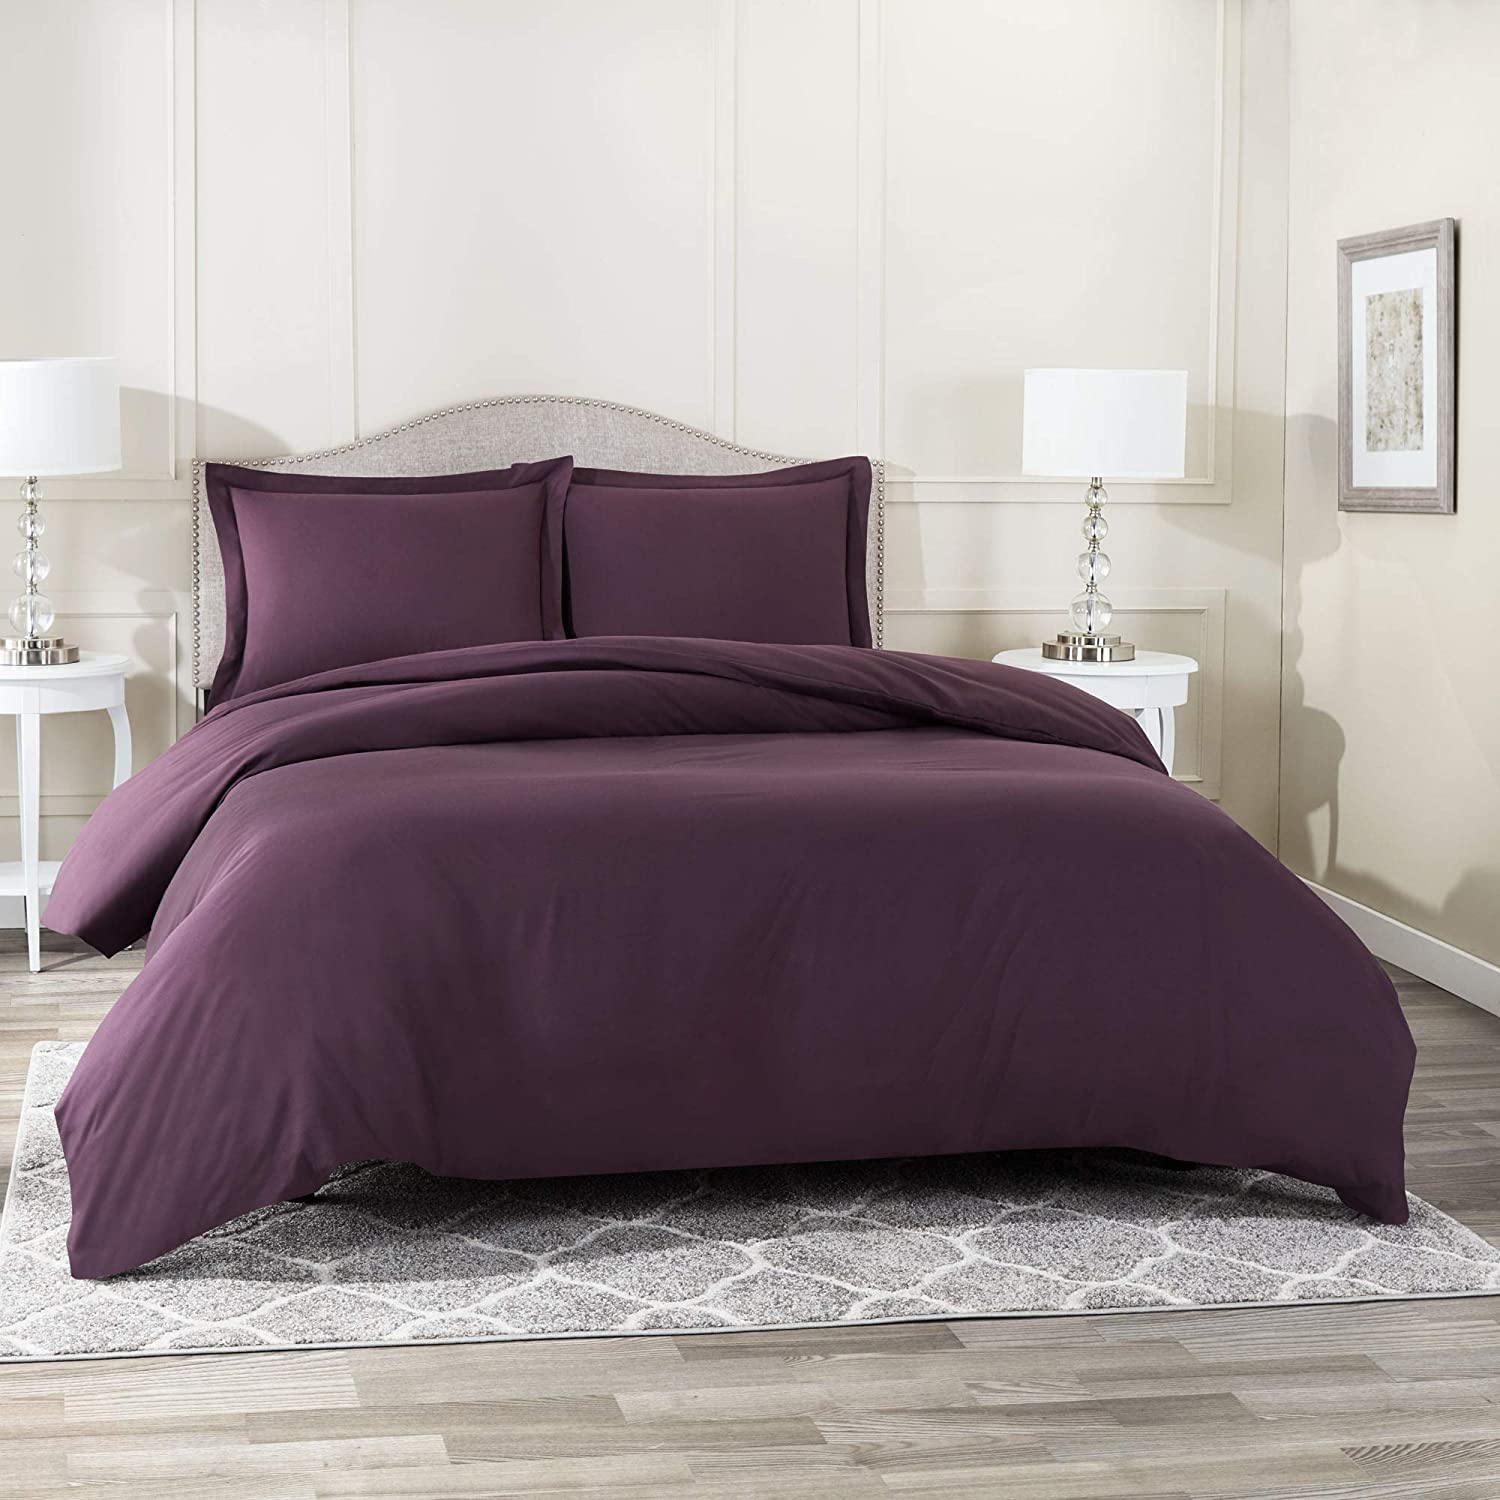 "Nestl Bedding Duvet Cover 3 Piece Set – Ultra Soft Double Brushed Microfiber Hotel Collection – Comforter Cover with Button Closure and 2 Pillow Shams, Eggplant - King 90""x104"""